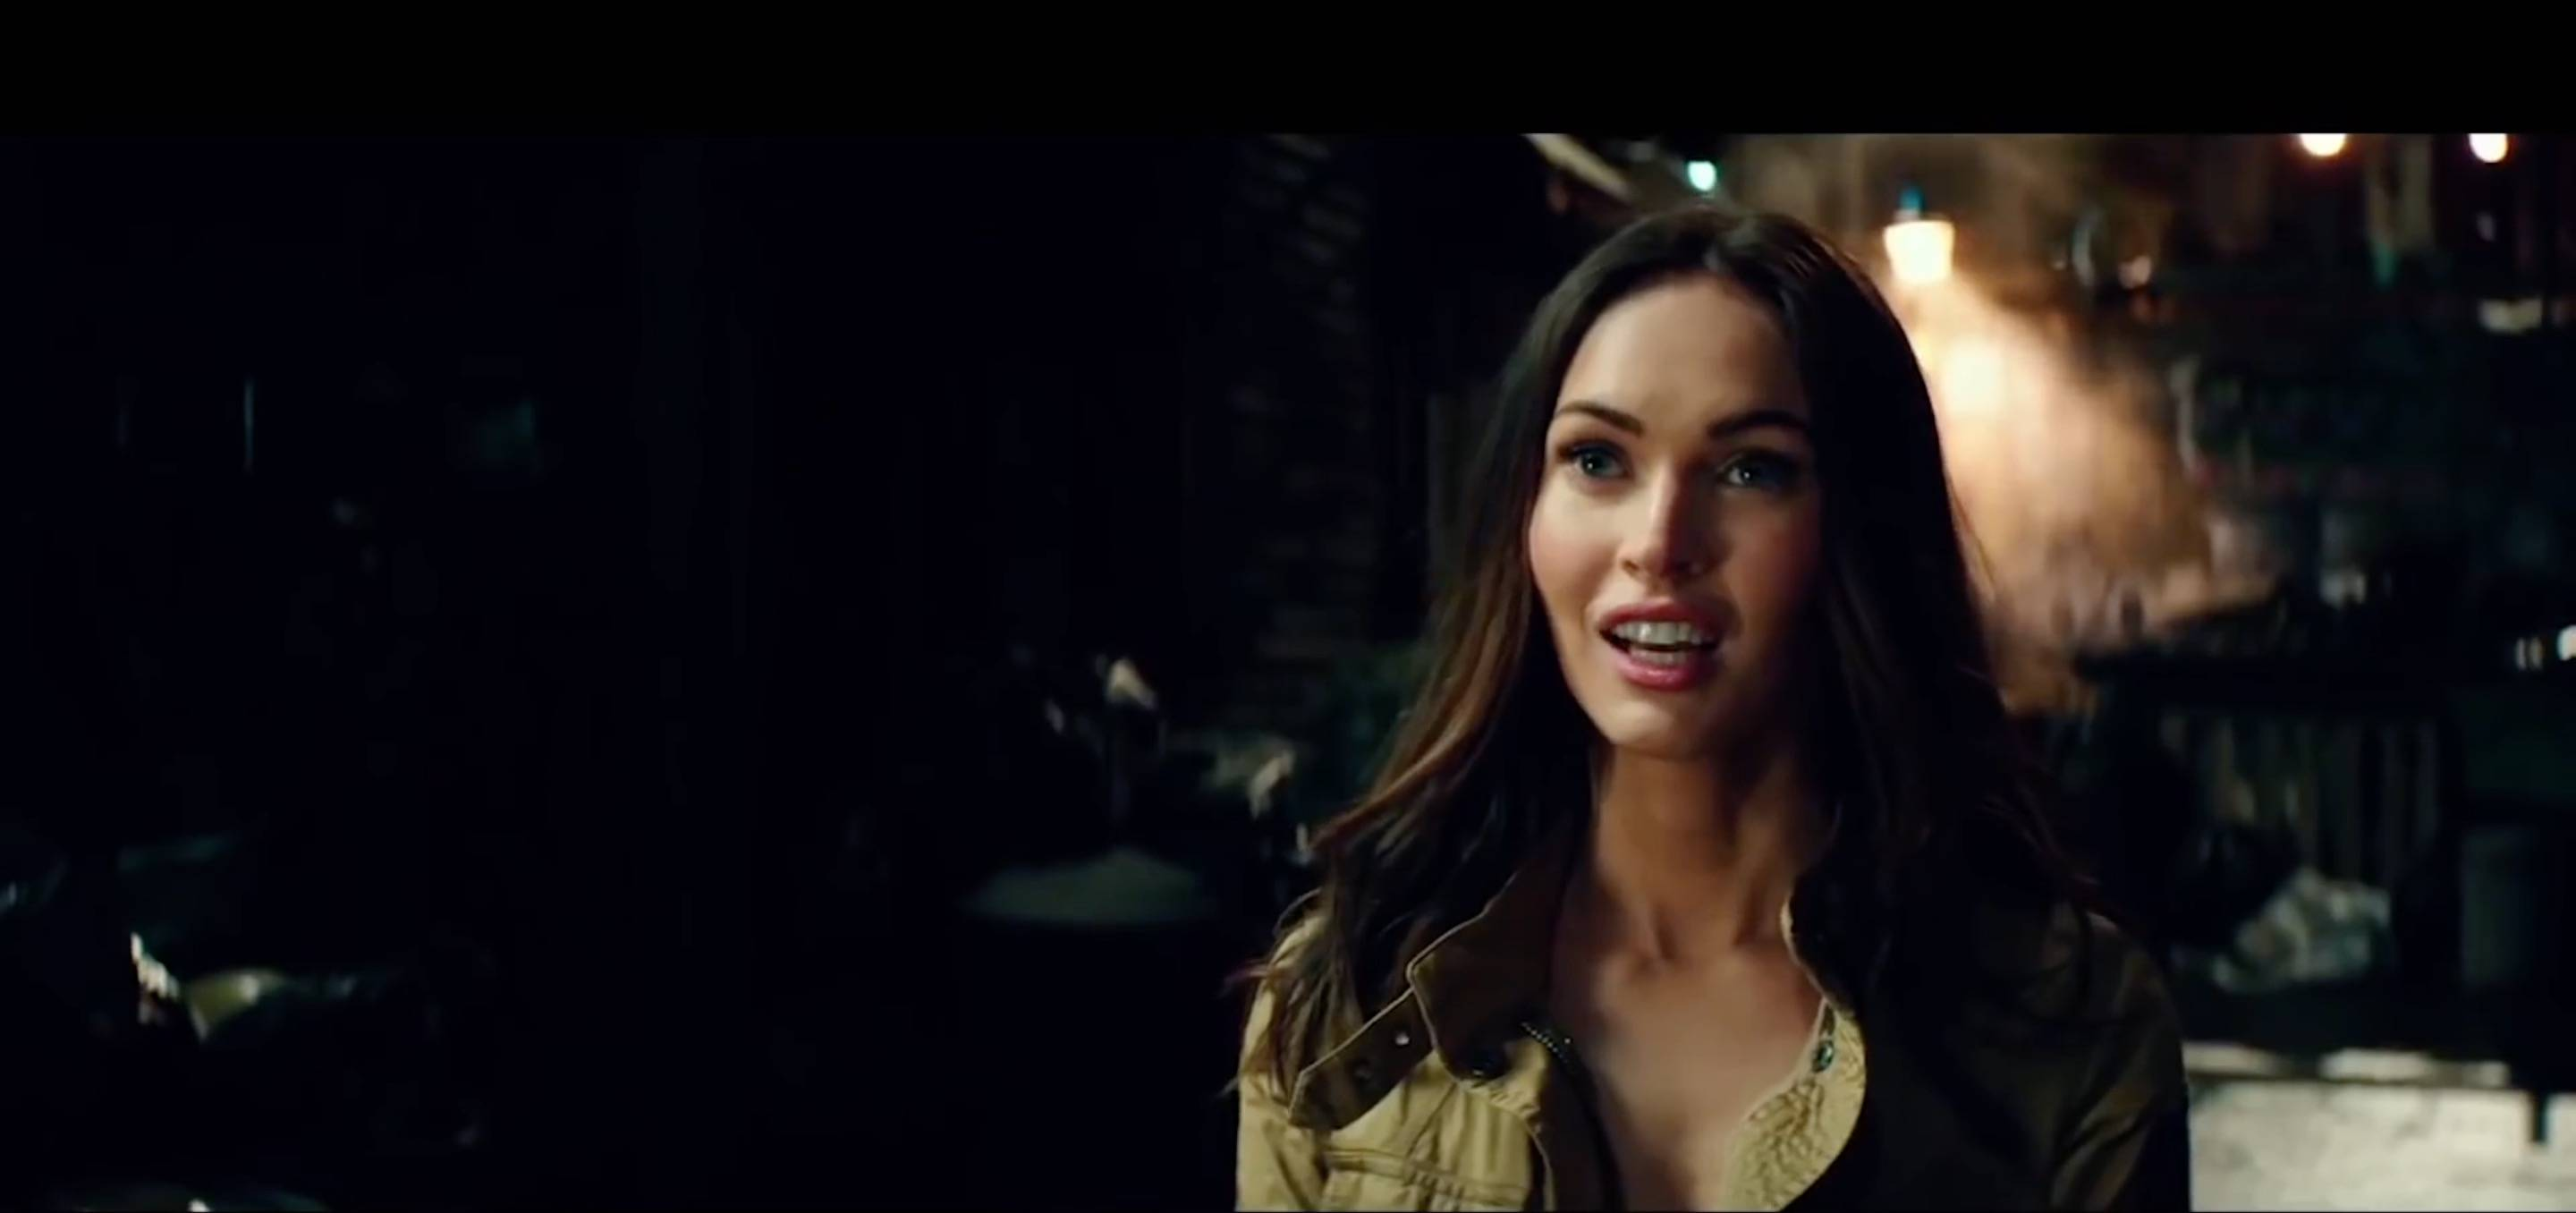 1c3a19e1b32f Megan Fox Behind the Scenes on 'Teenage Mutant Ninja Turtles 2' - MTV News  (Video Clip) | VMA